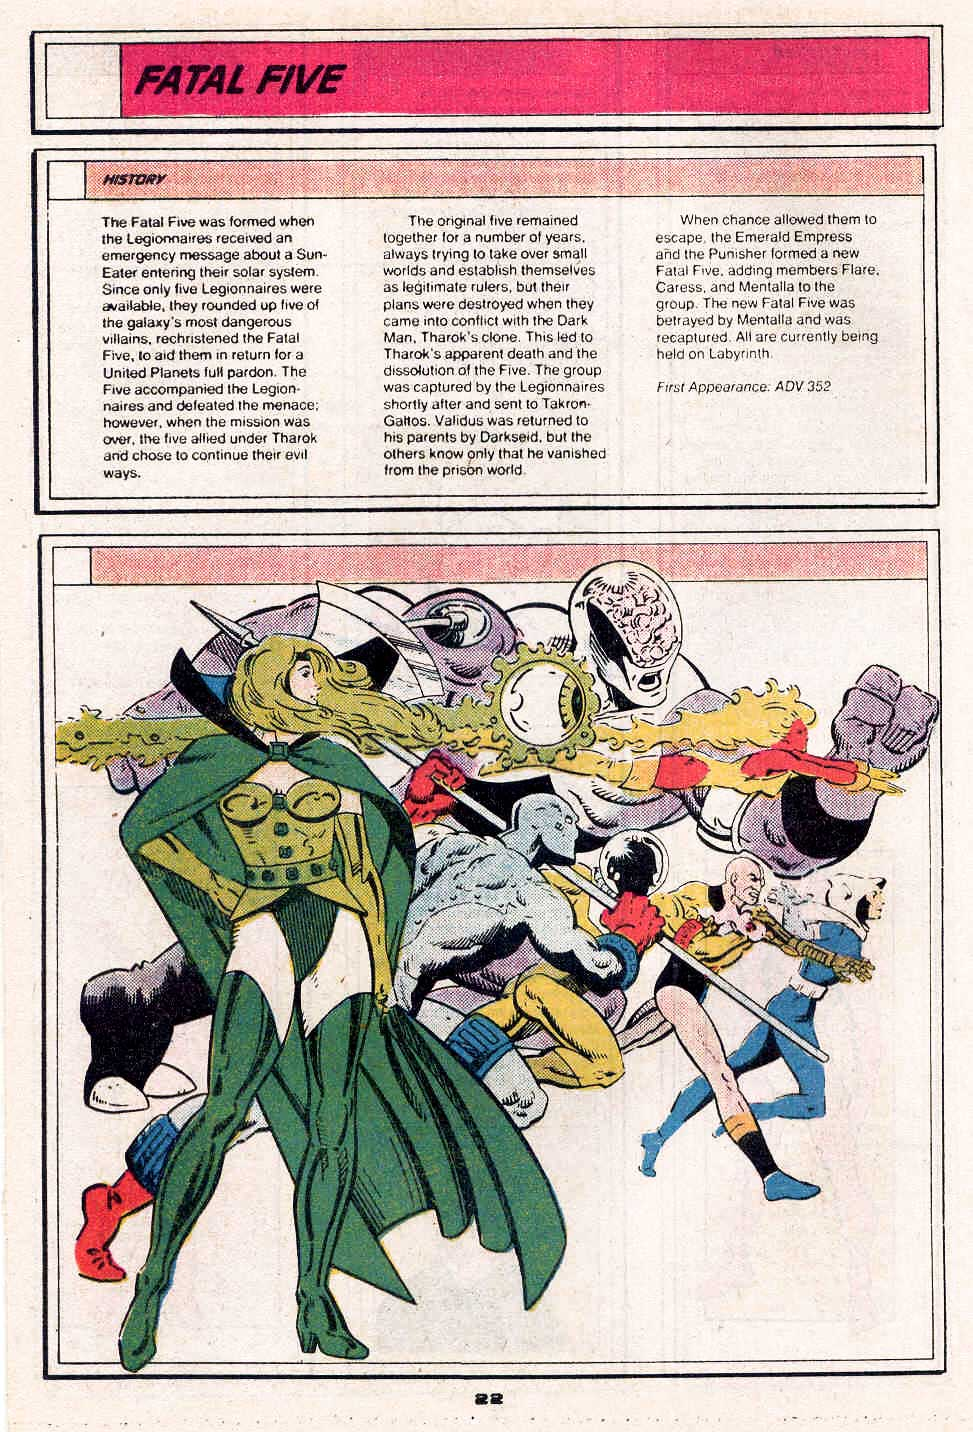 Fatal Five by Dan Jurgens and Robert Campanella - Who's Who in the Legion of Super-Heroes #2